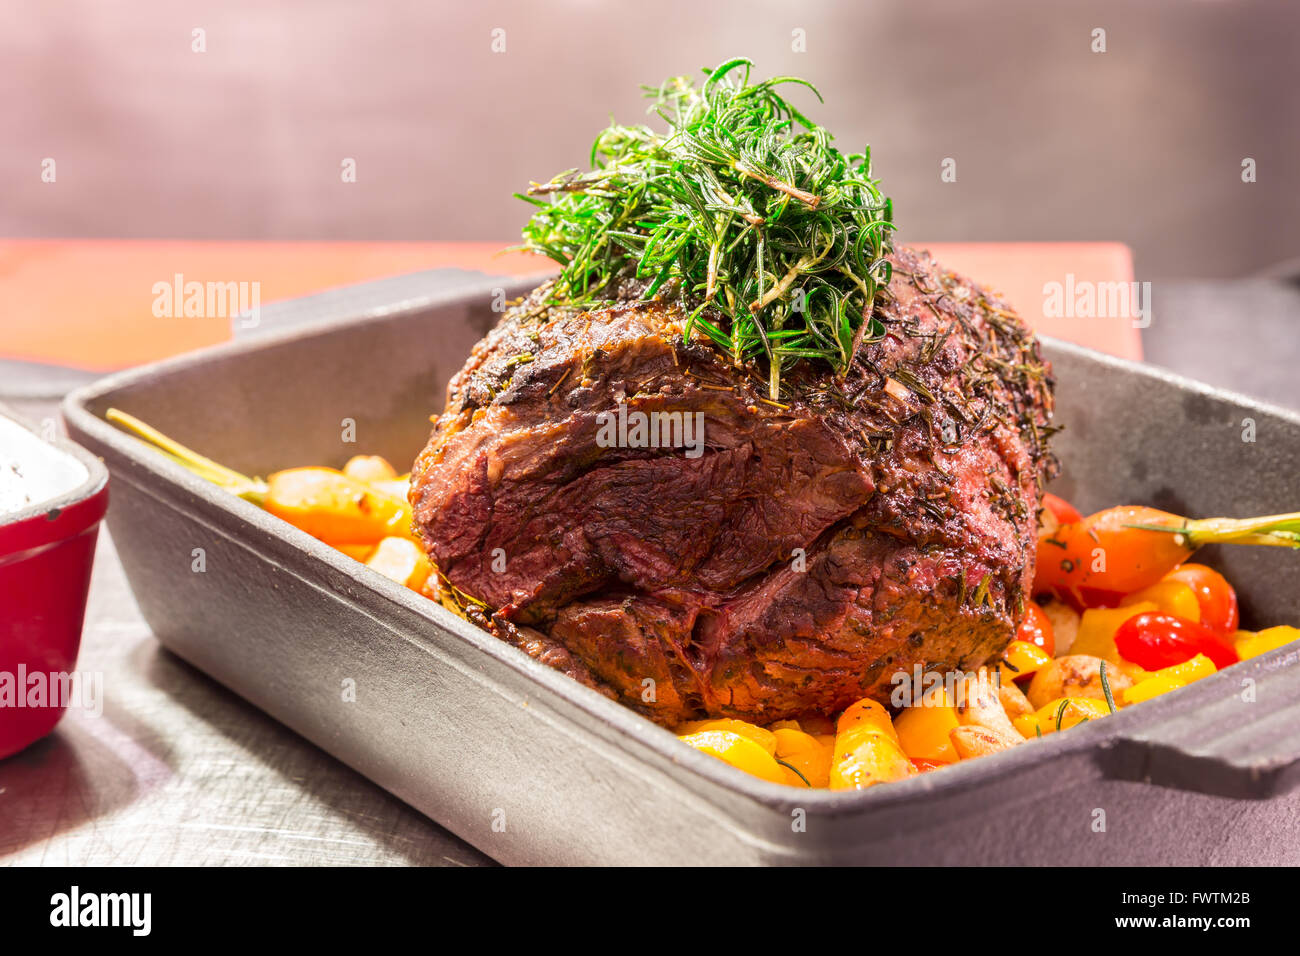 Gourmet Main Entree Course Grilled Rib-Eye Beef steak with herb Stock Photo